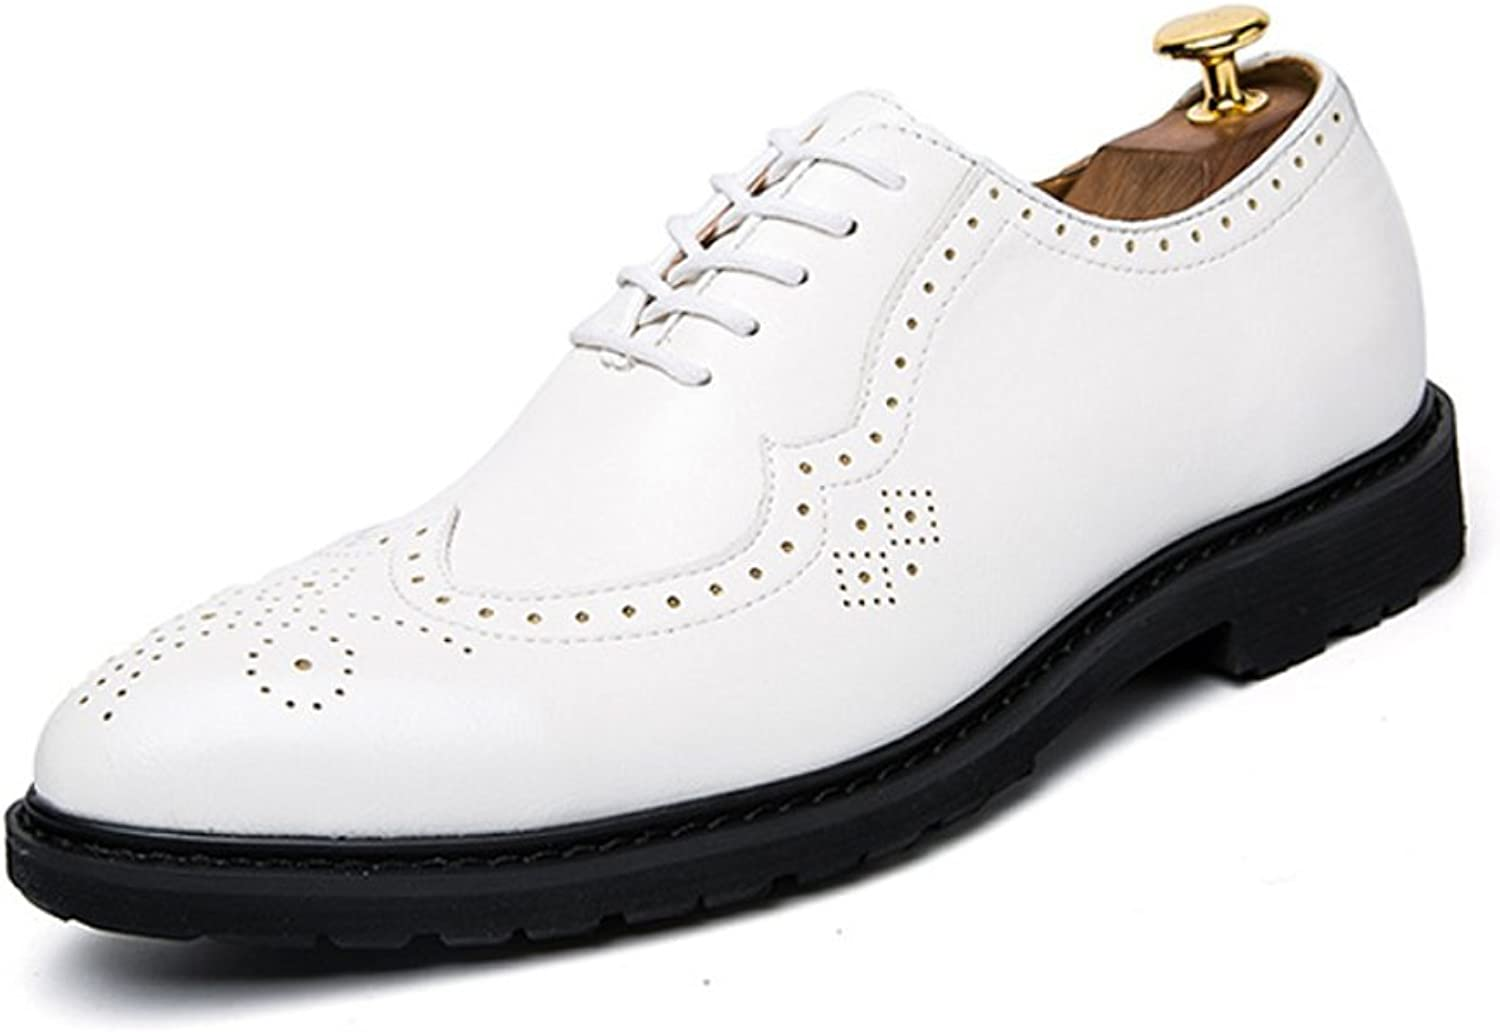 LYZGF Men Youth Business Casual Fashion Wedding Brock Leather shoes